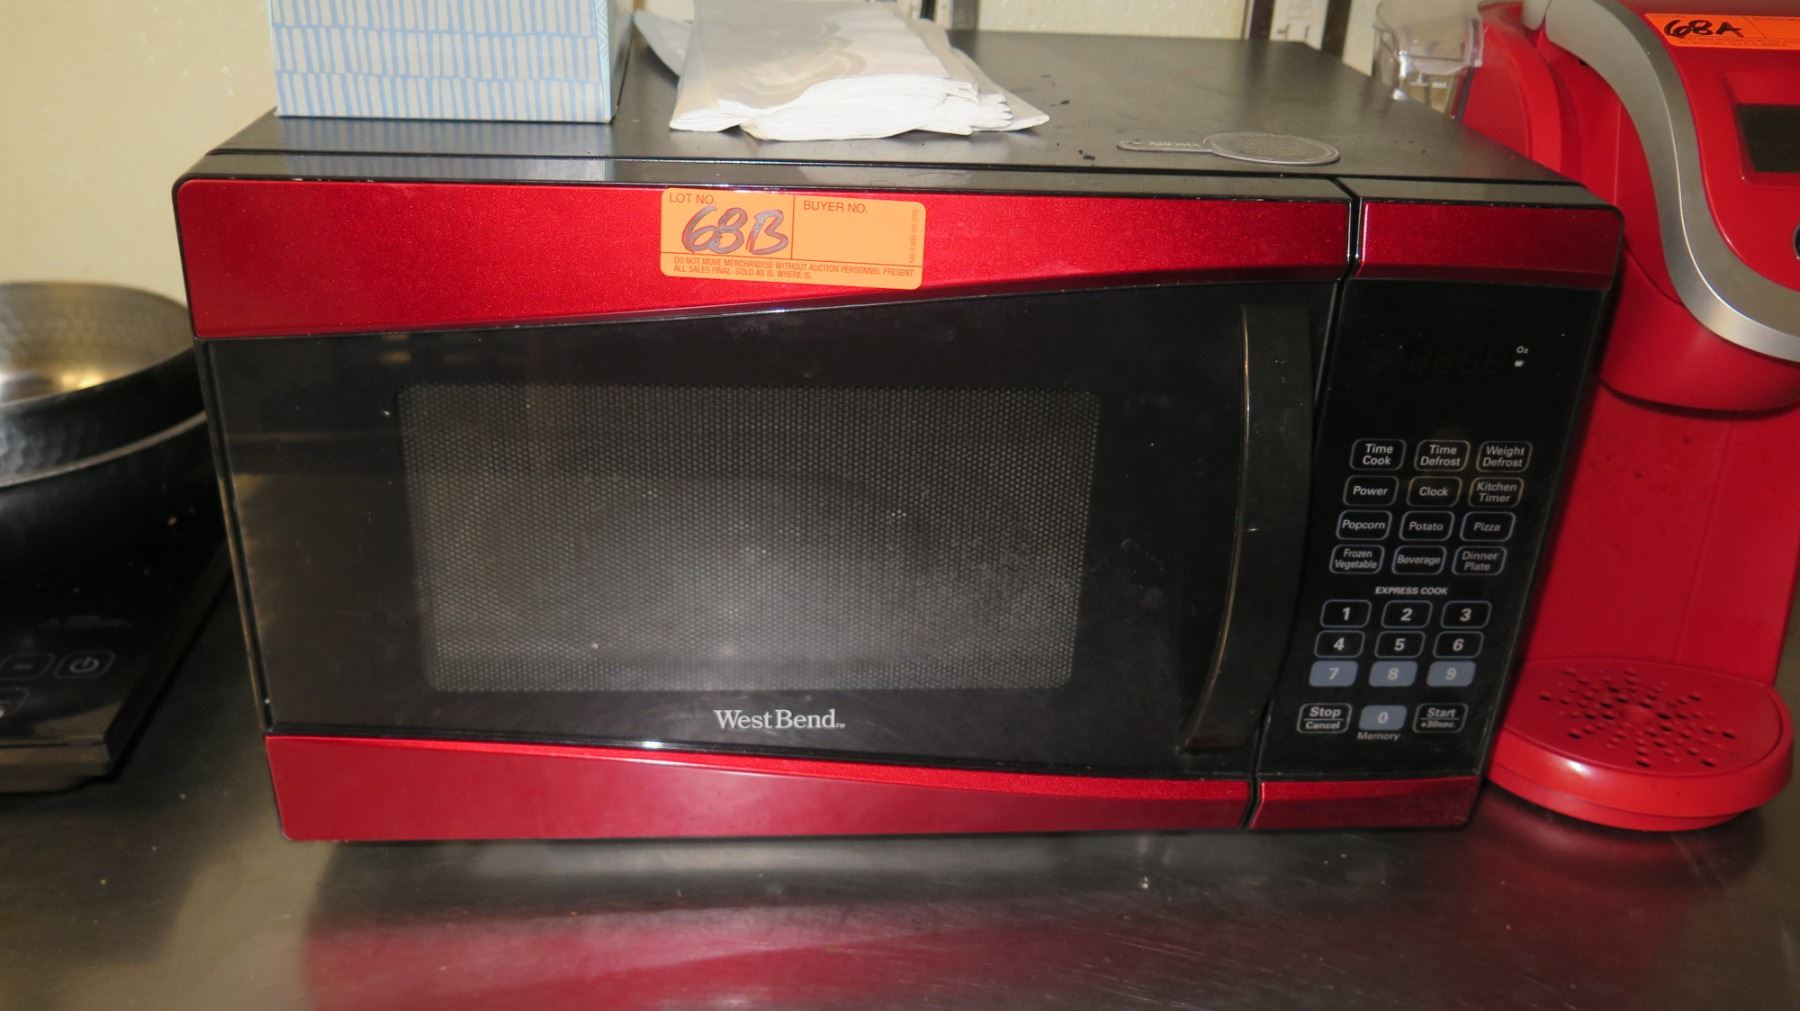 red west bend countertop microwave